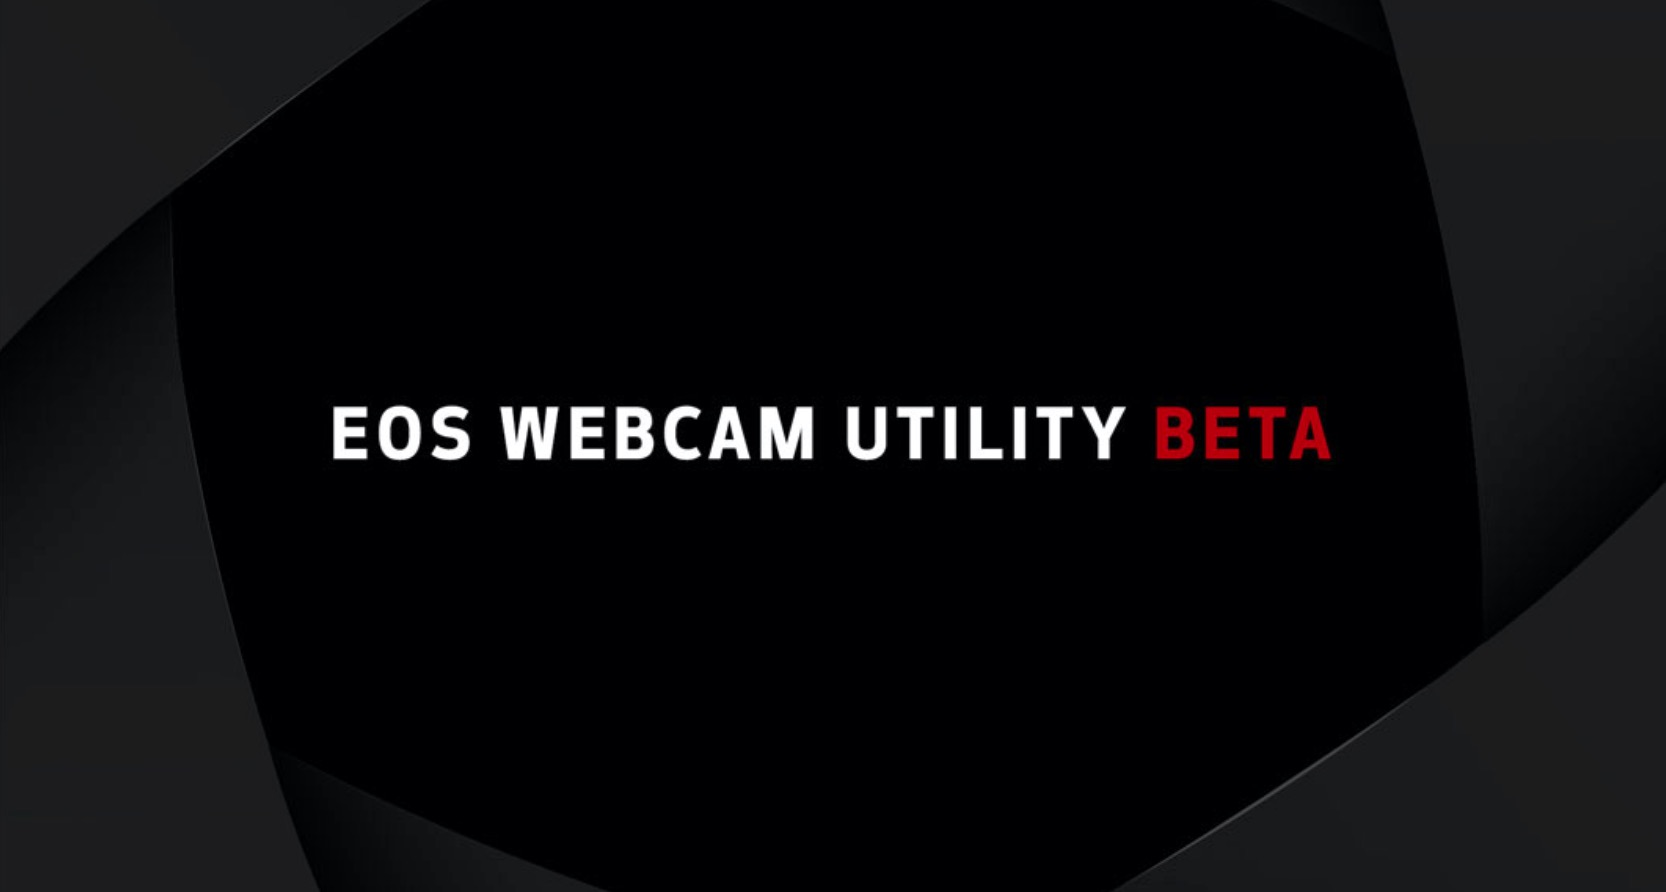 Canon S New Software Will Turn Select Eos Powershot Cameras Into